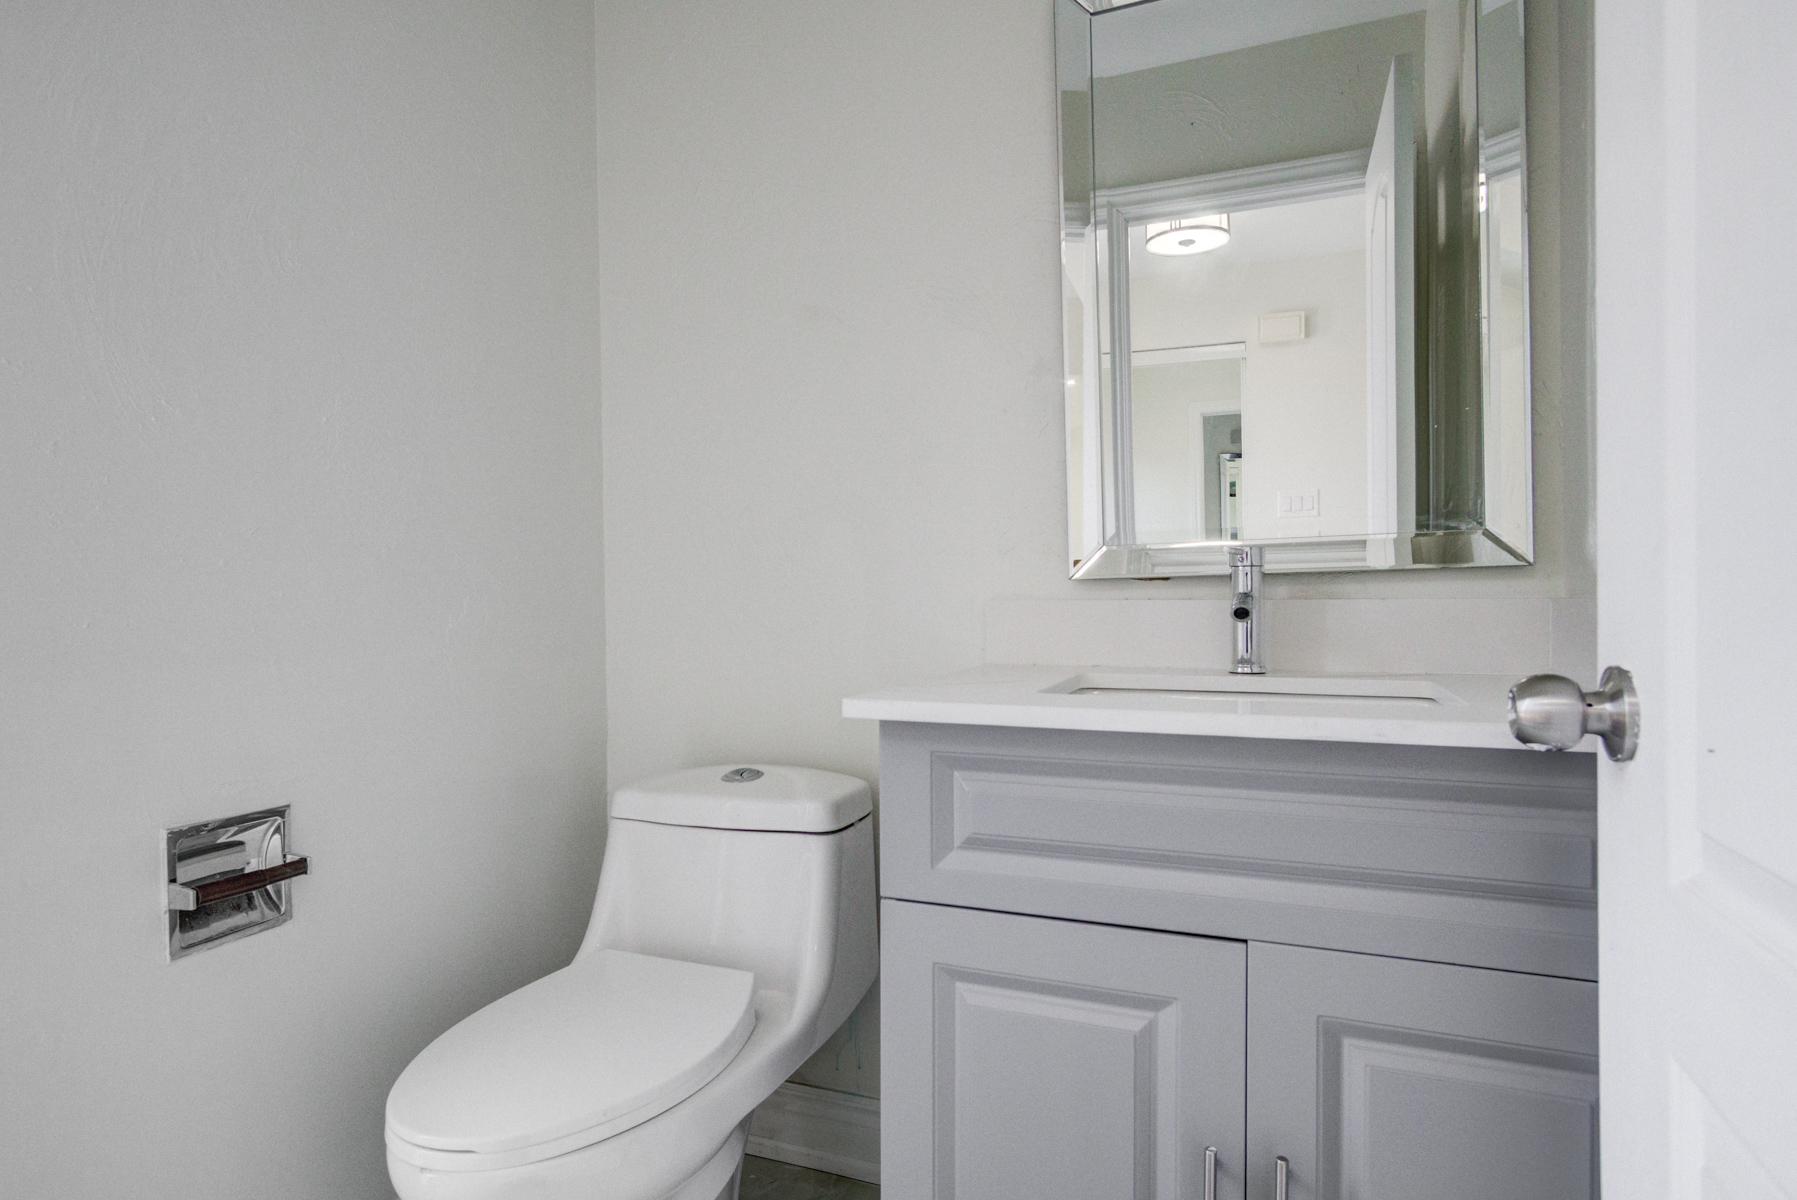 brampton-houses-for-sale-real-estate-ground-floor-powder-room